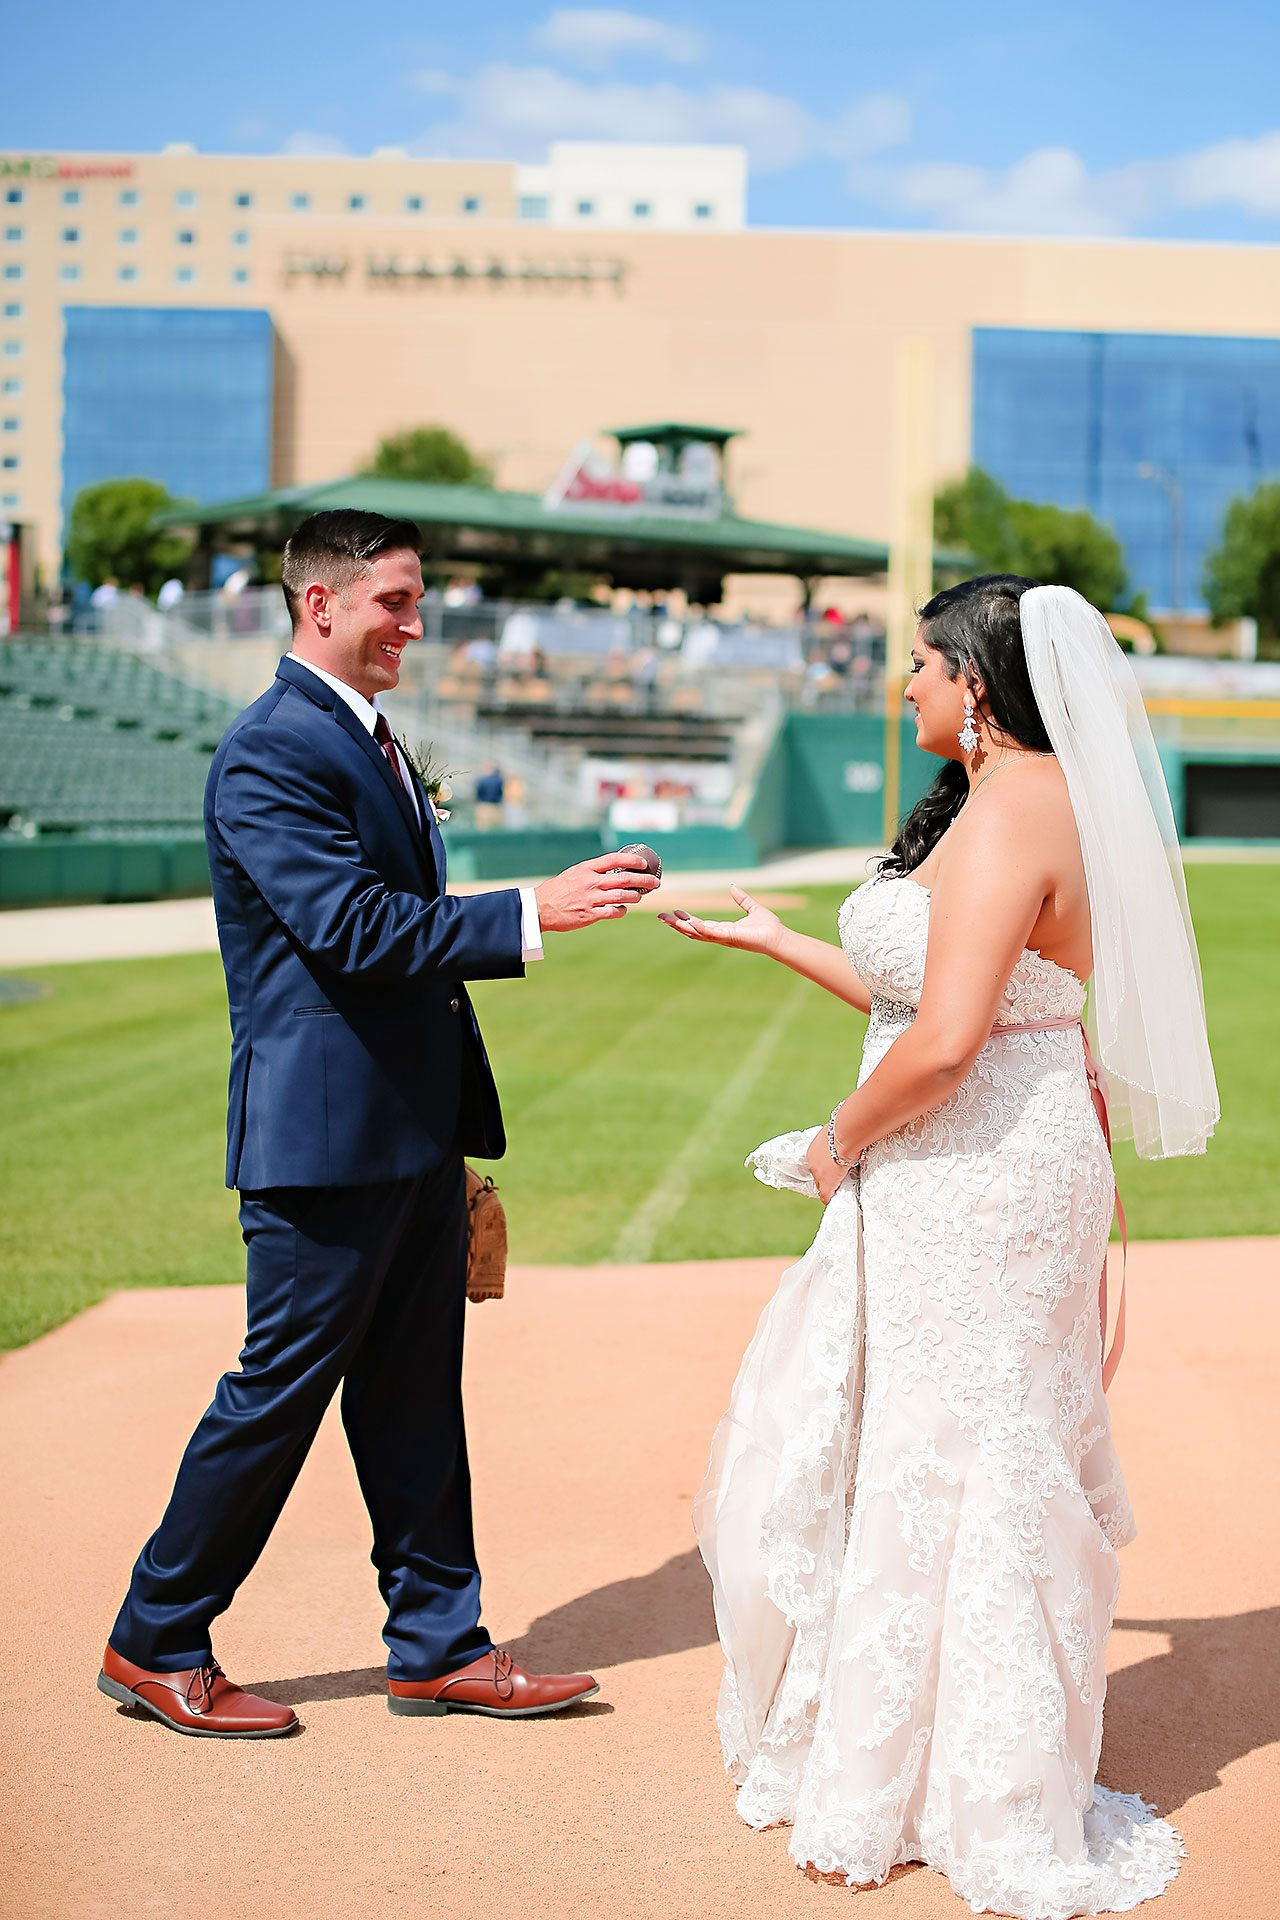 Rojita Chris St Johns Victory Field Wedding 199